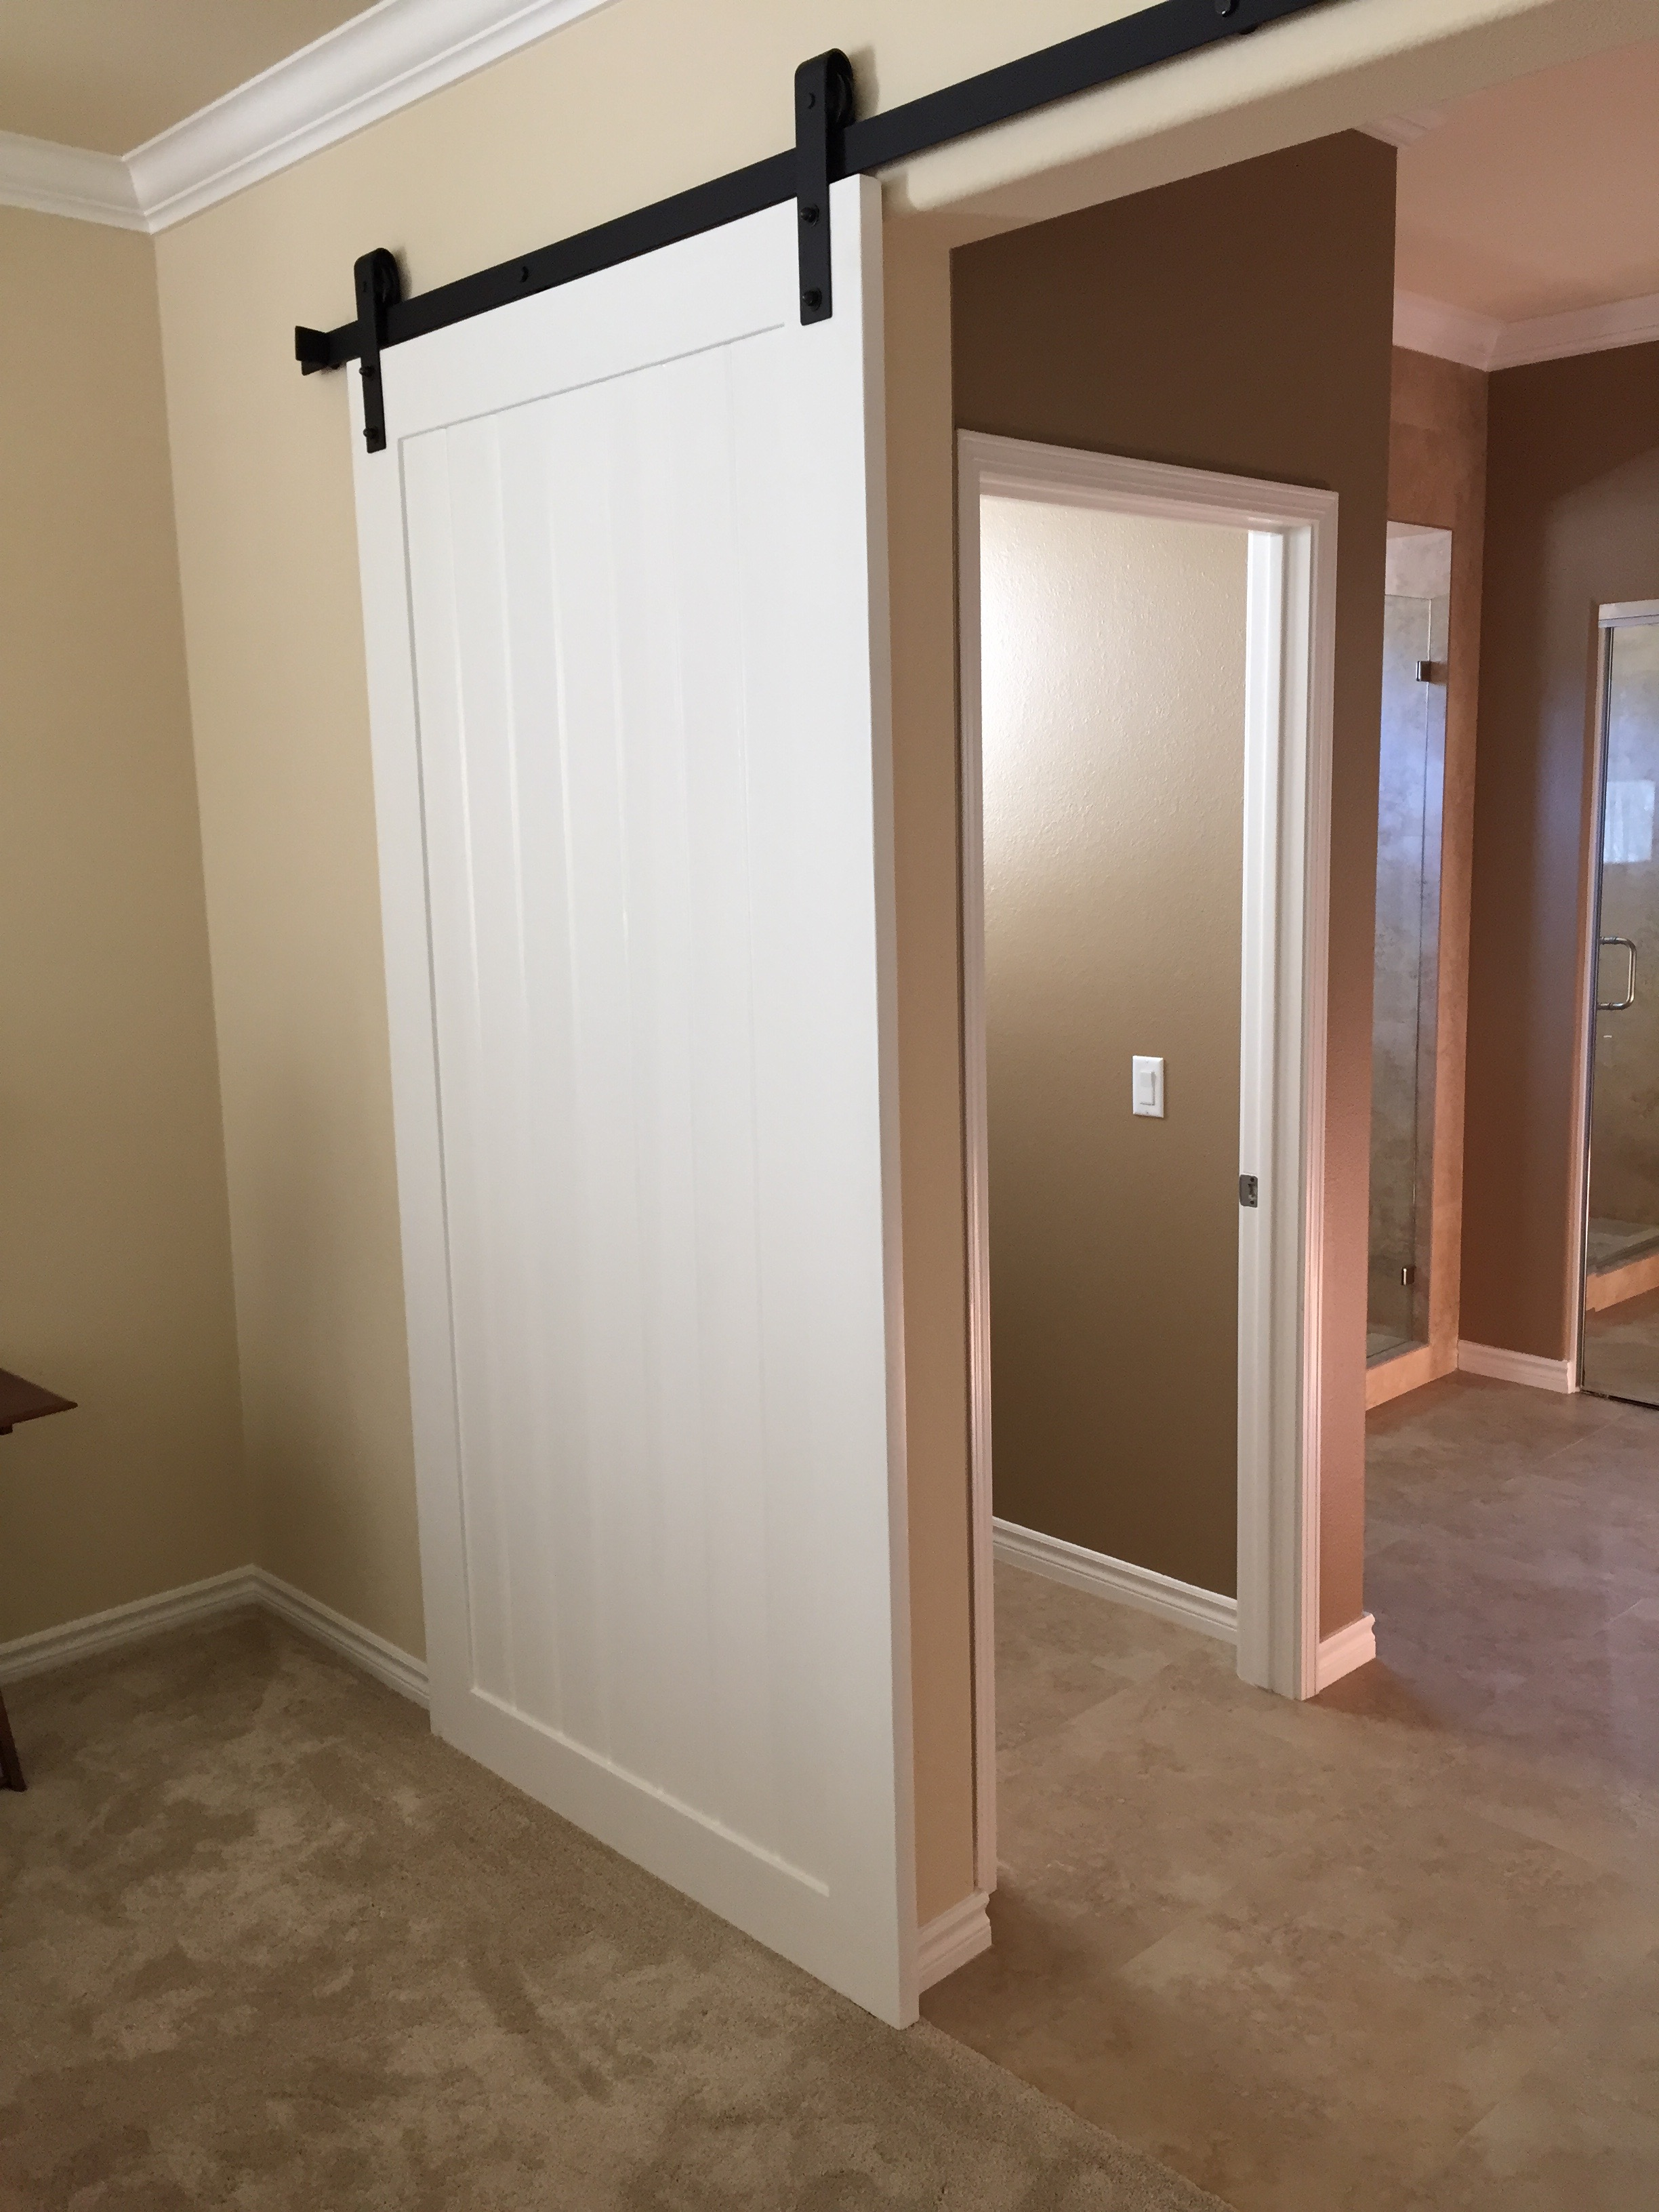 ... across Orange County. A Barn Door is an attractive way to ide a space and also create a focal point. Let us design and build you custom Barn Door! & Barn Doors - Inspired Remodels pezcame.com